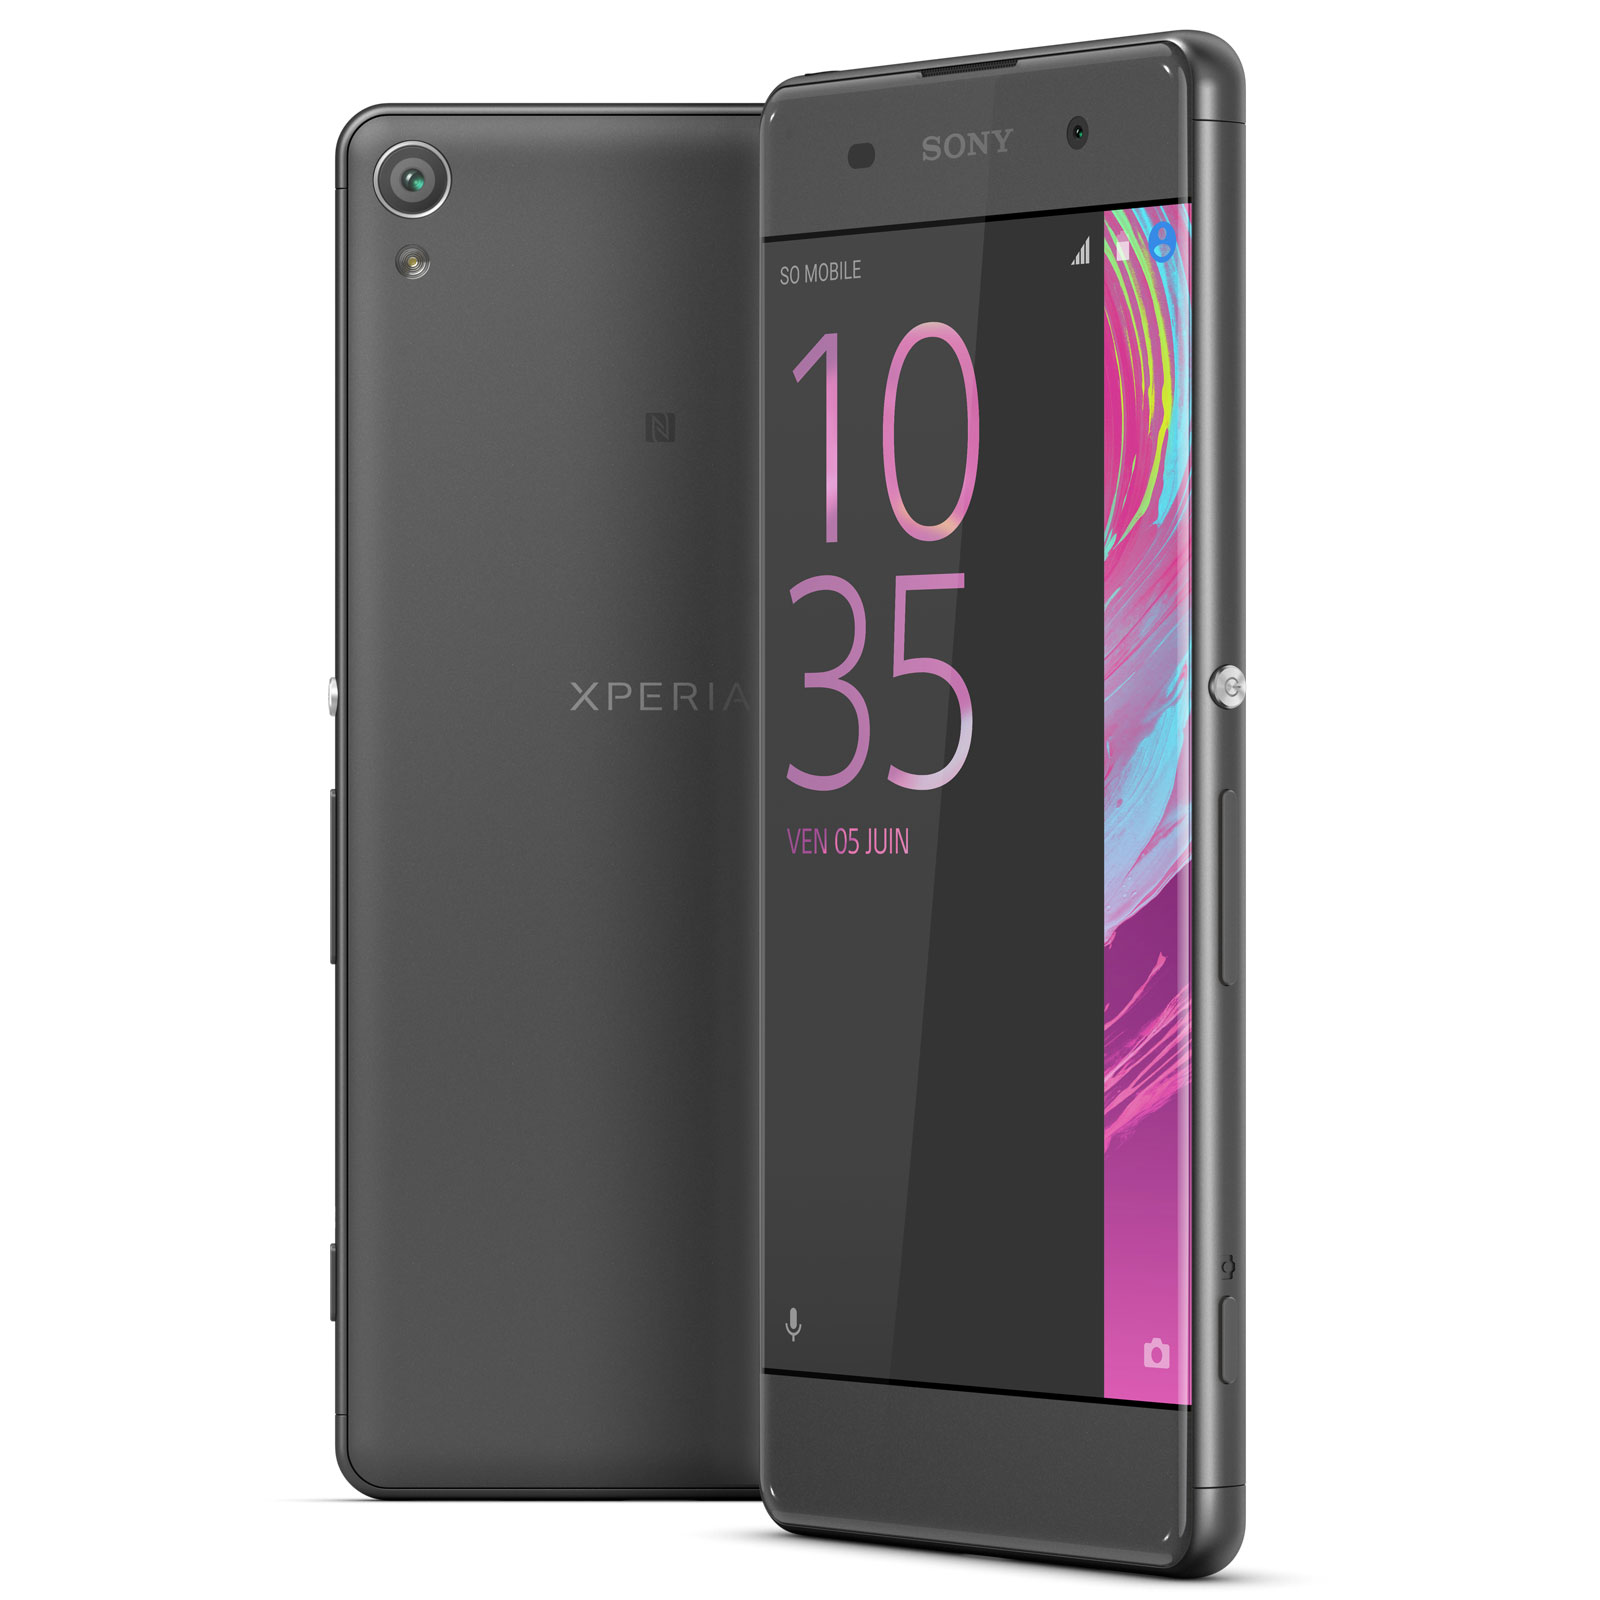 sony xperia xa dual sim 16 go noir mobile smartphone. Black Bedroom Furniture Sets. Home Design Ideas